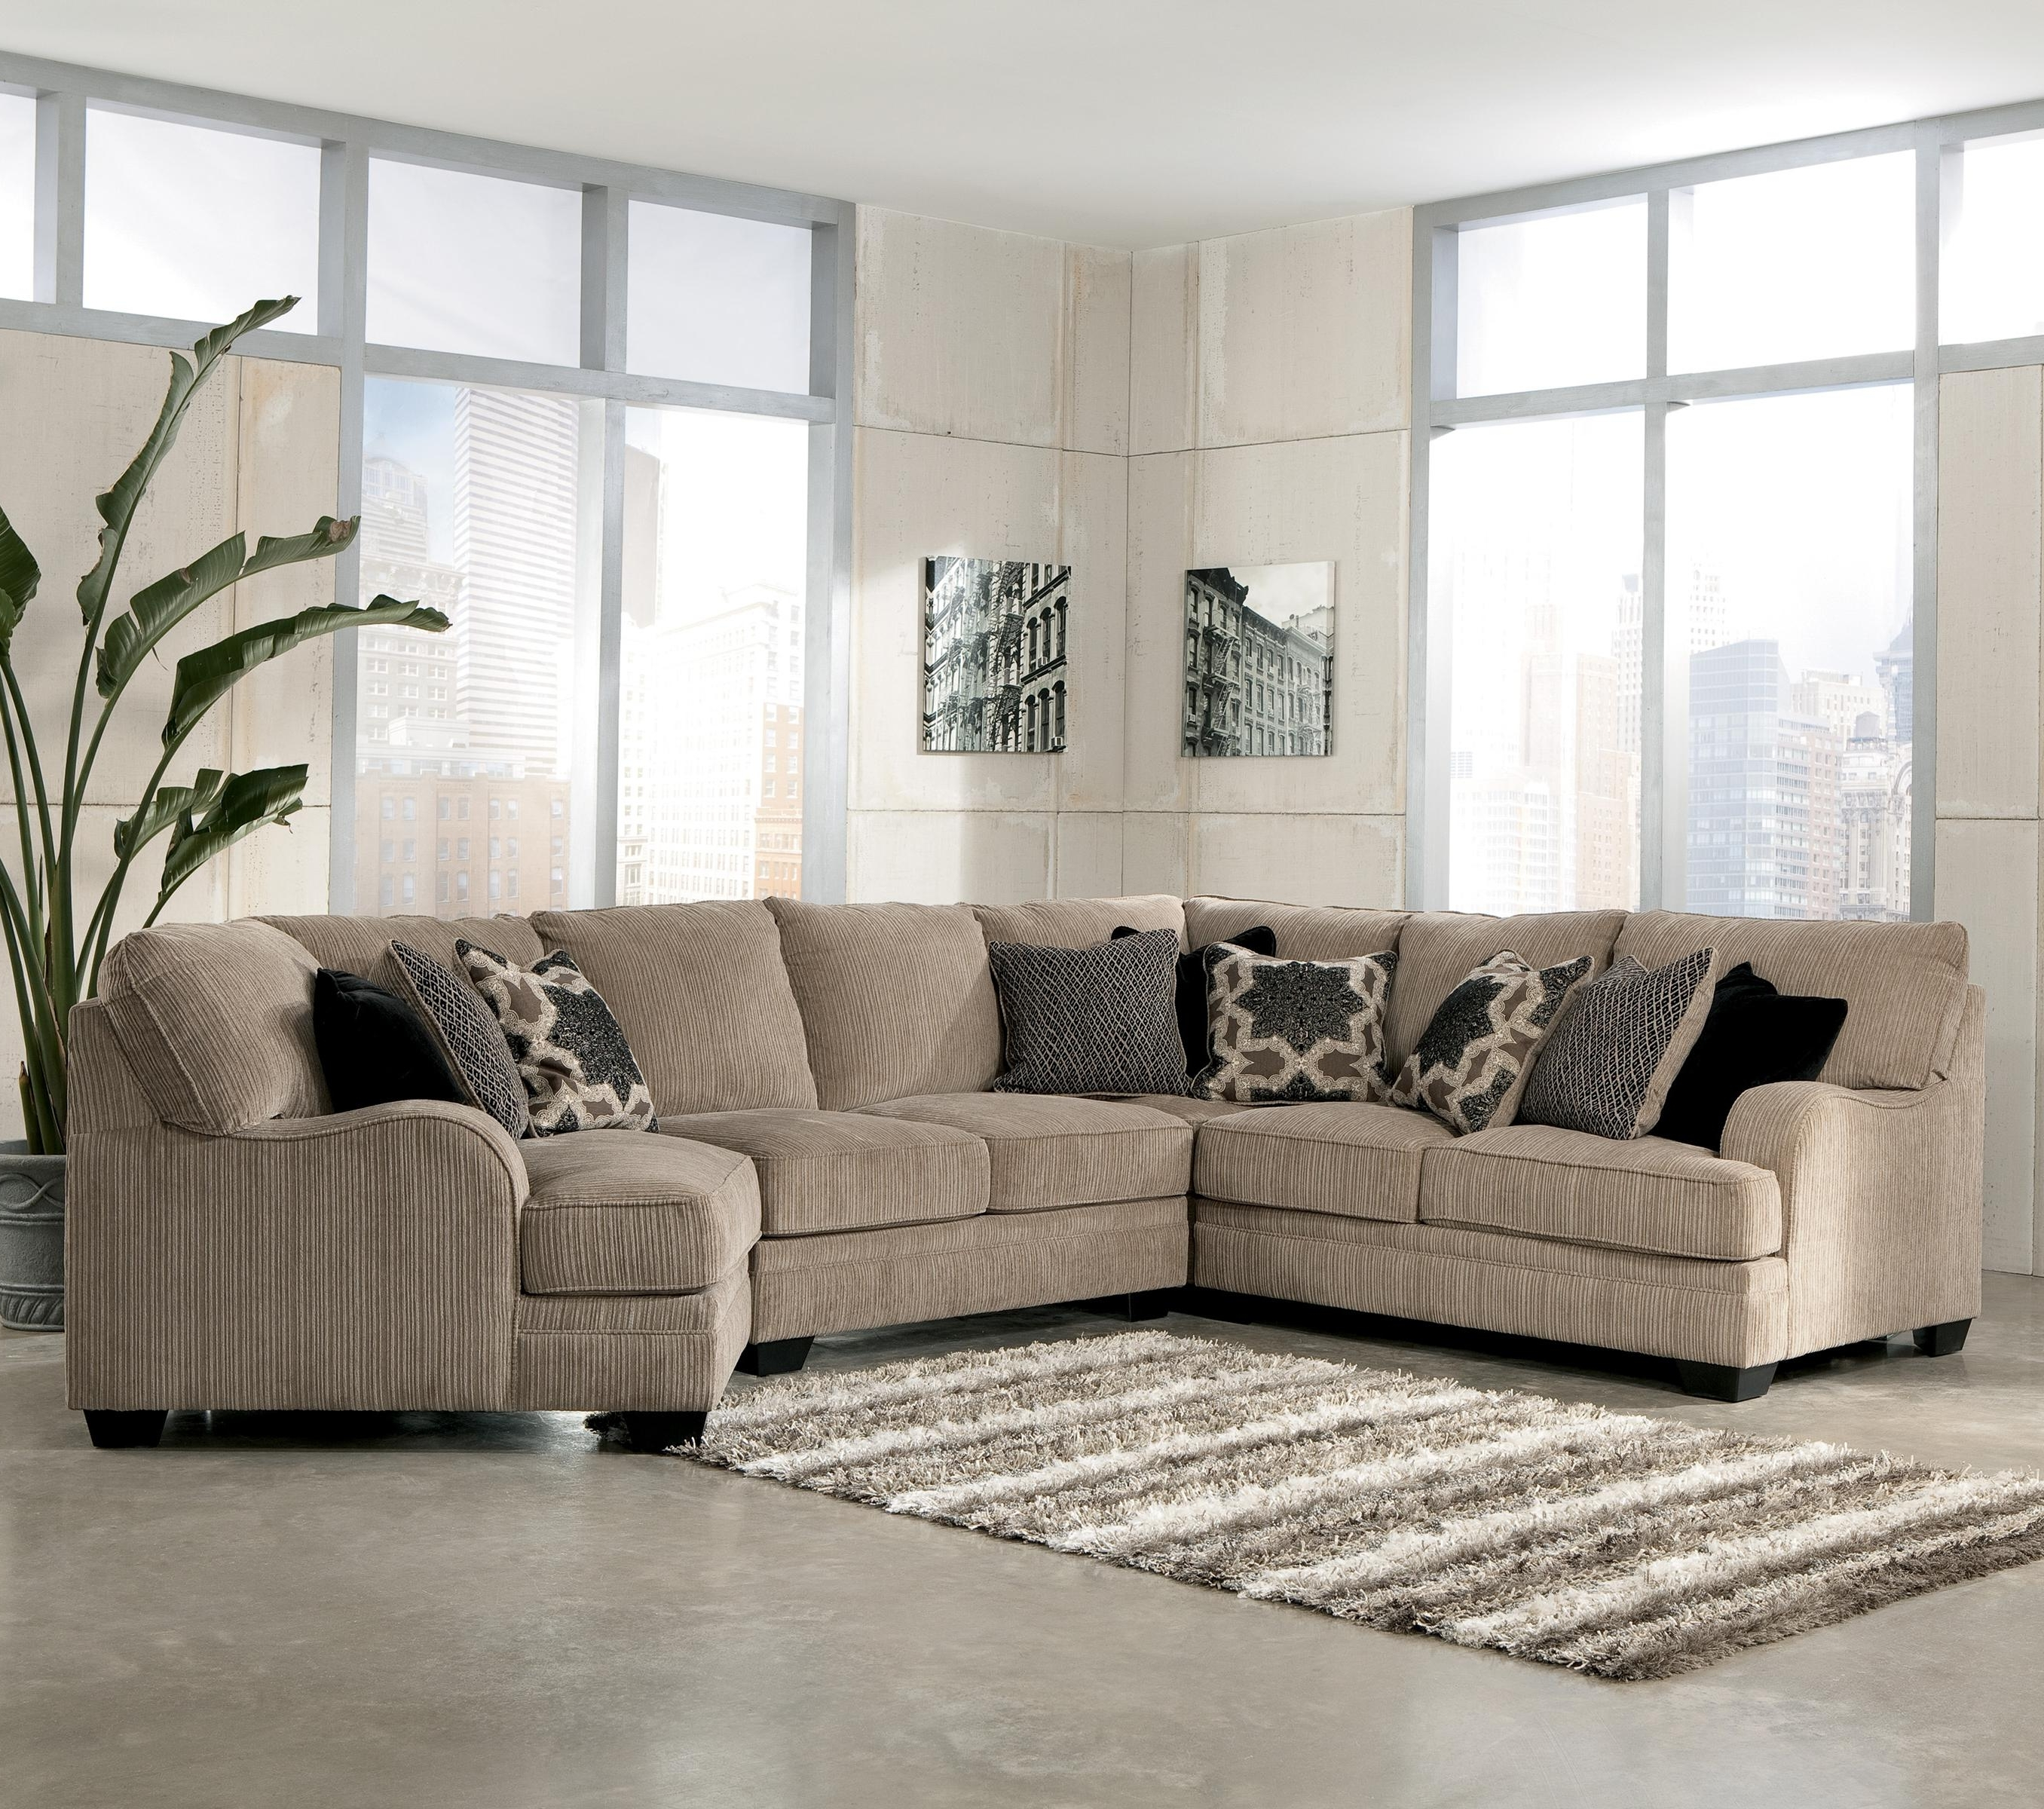 Most Current Sectional Sofas With Cuddler Within Signature Designashley Katisha – Platinum 4 Piece Sectional (View 9 of 20)